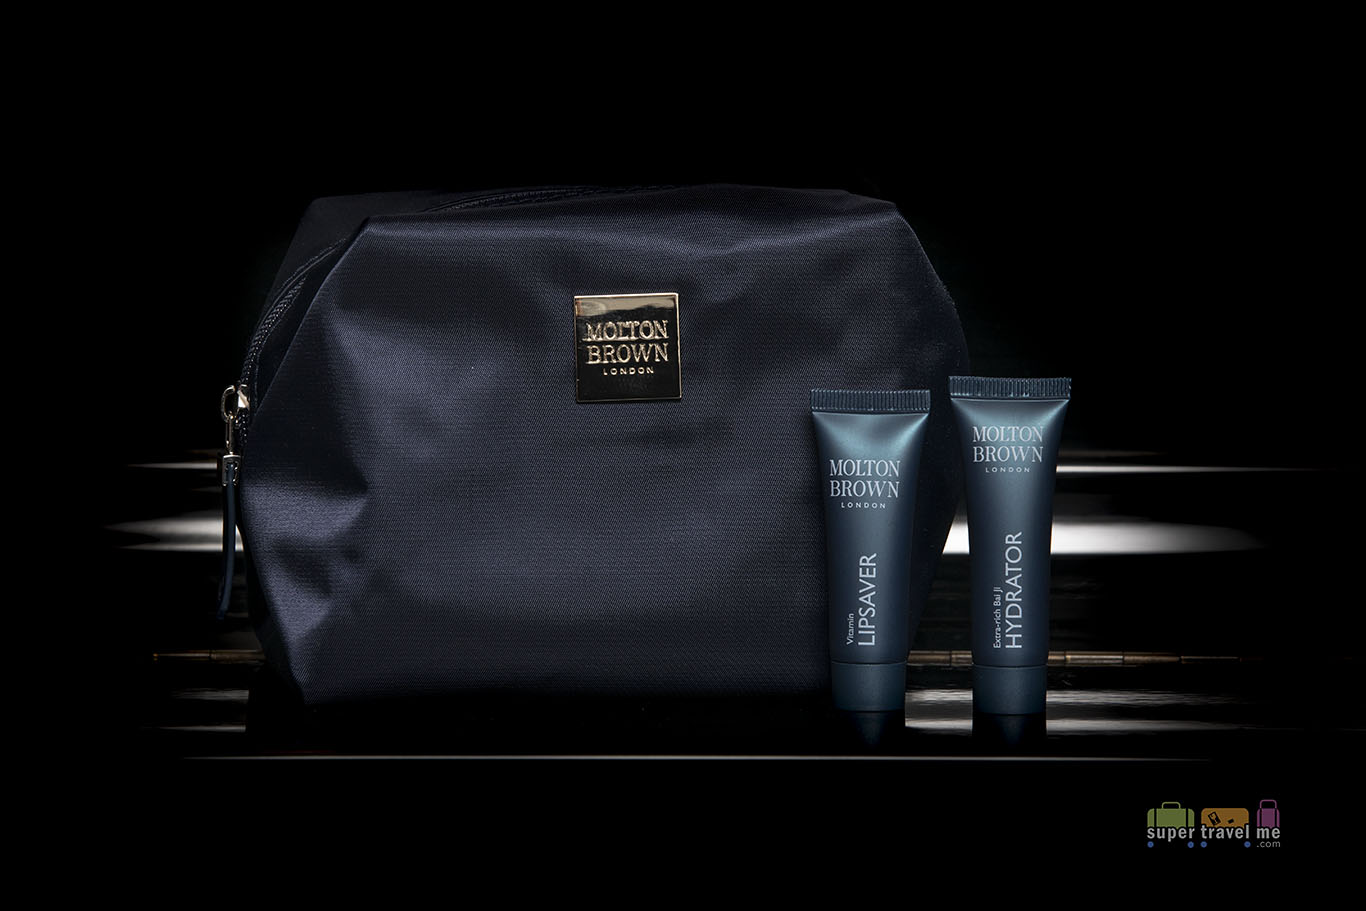 Turkish Airlines Molton Brown amenities in kit 4326